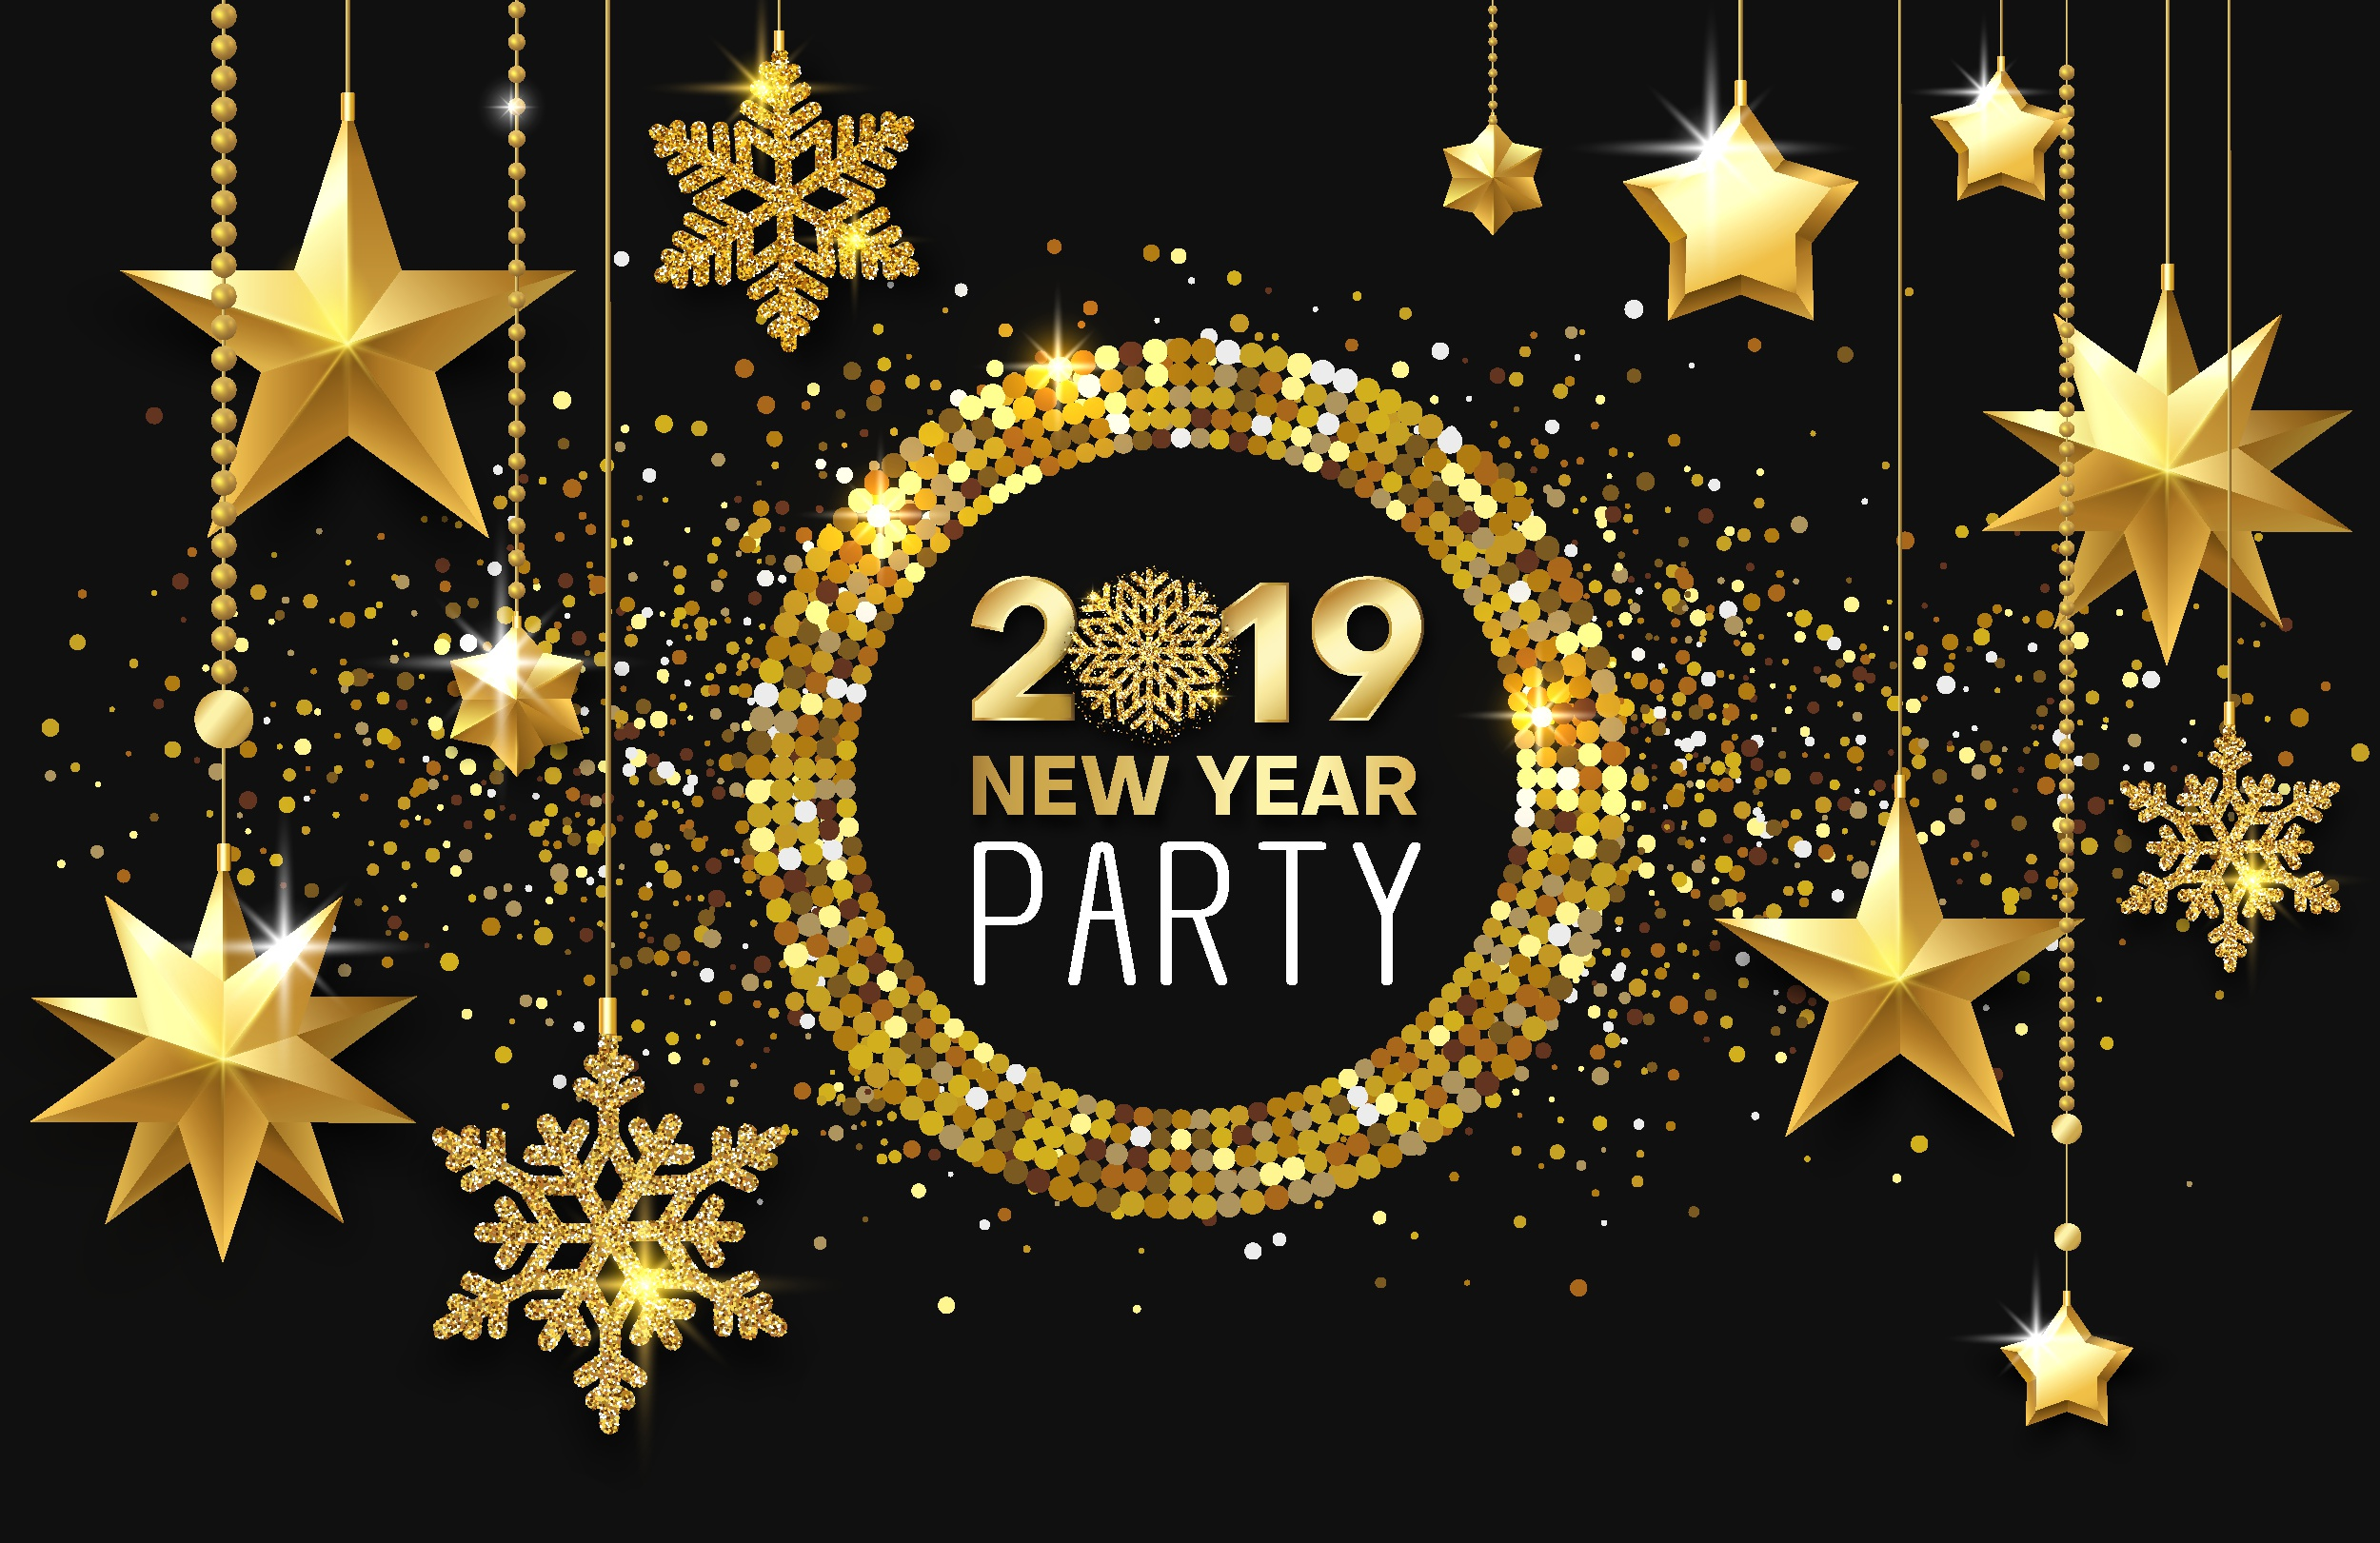 New Year 2019 HD Wallpaper  Background Image  2500x1621  ID